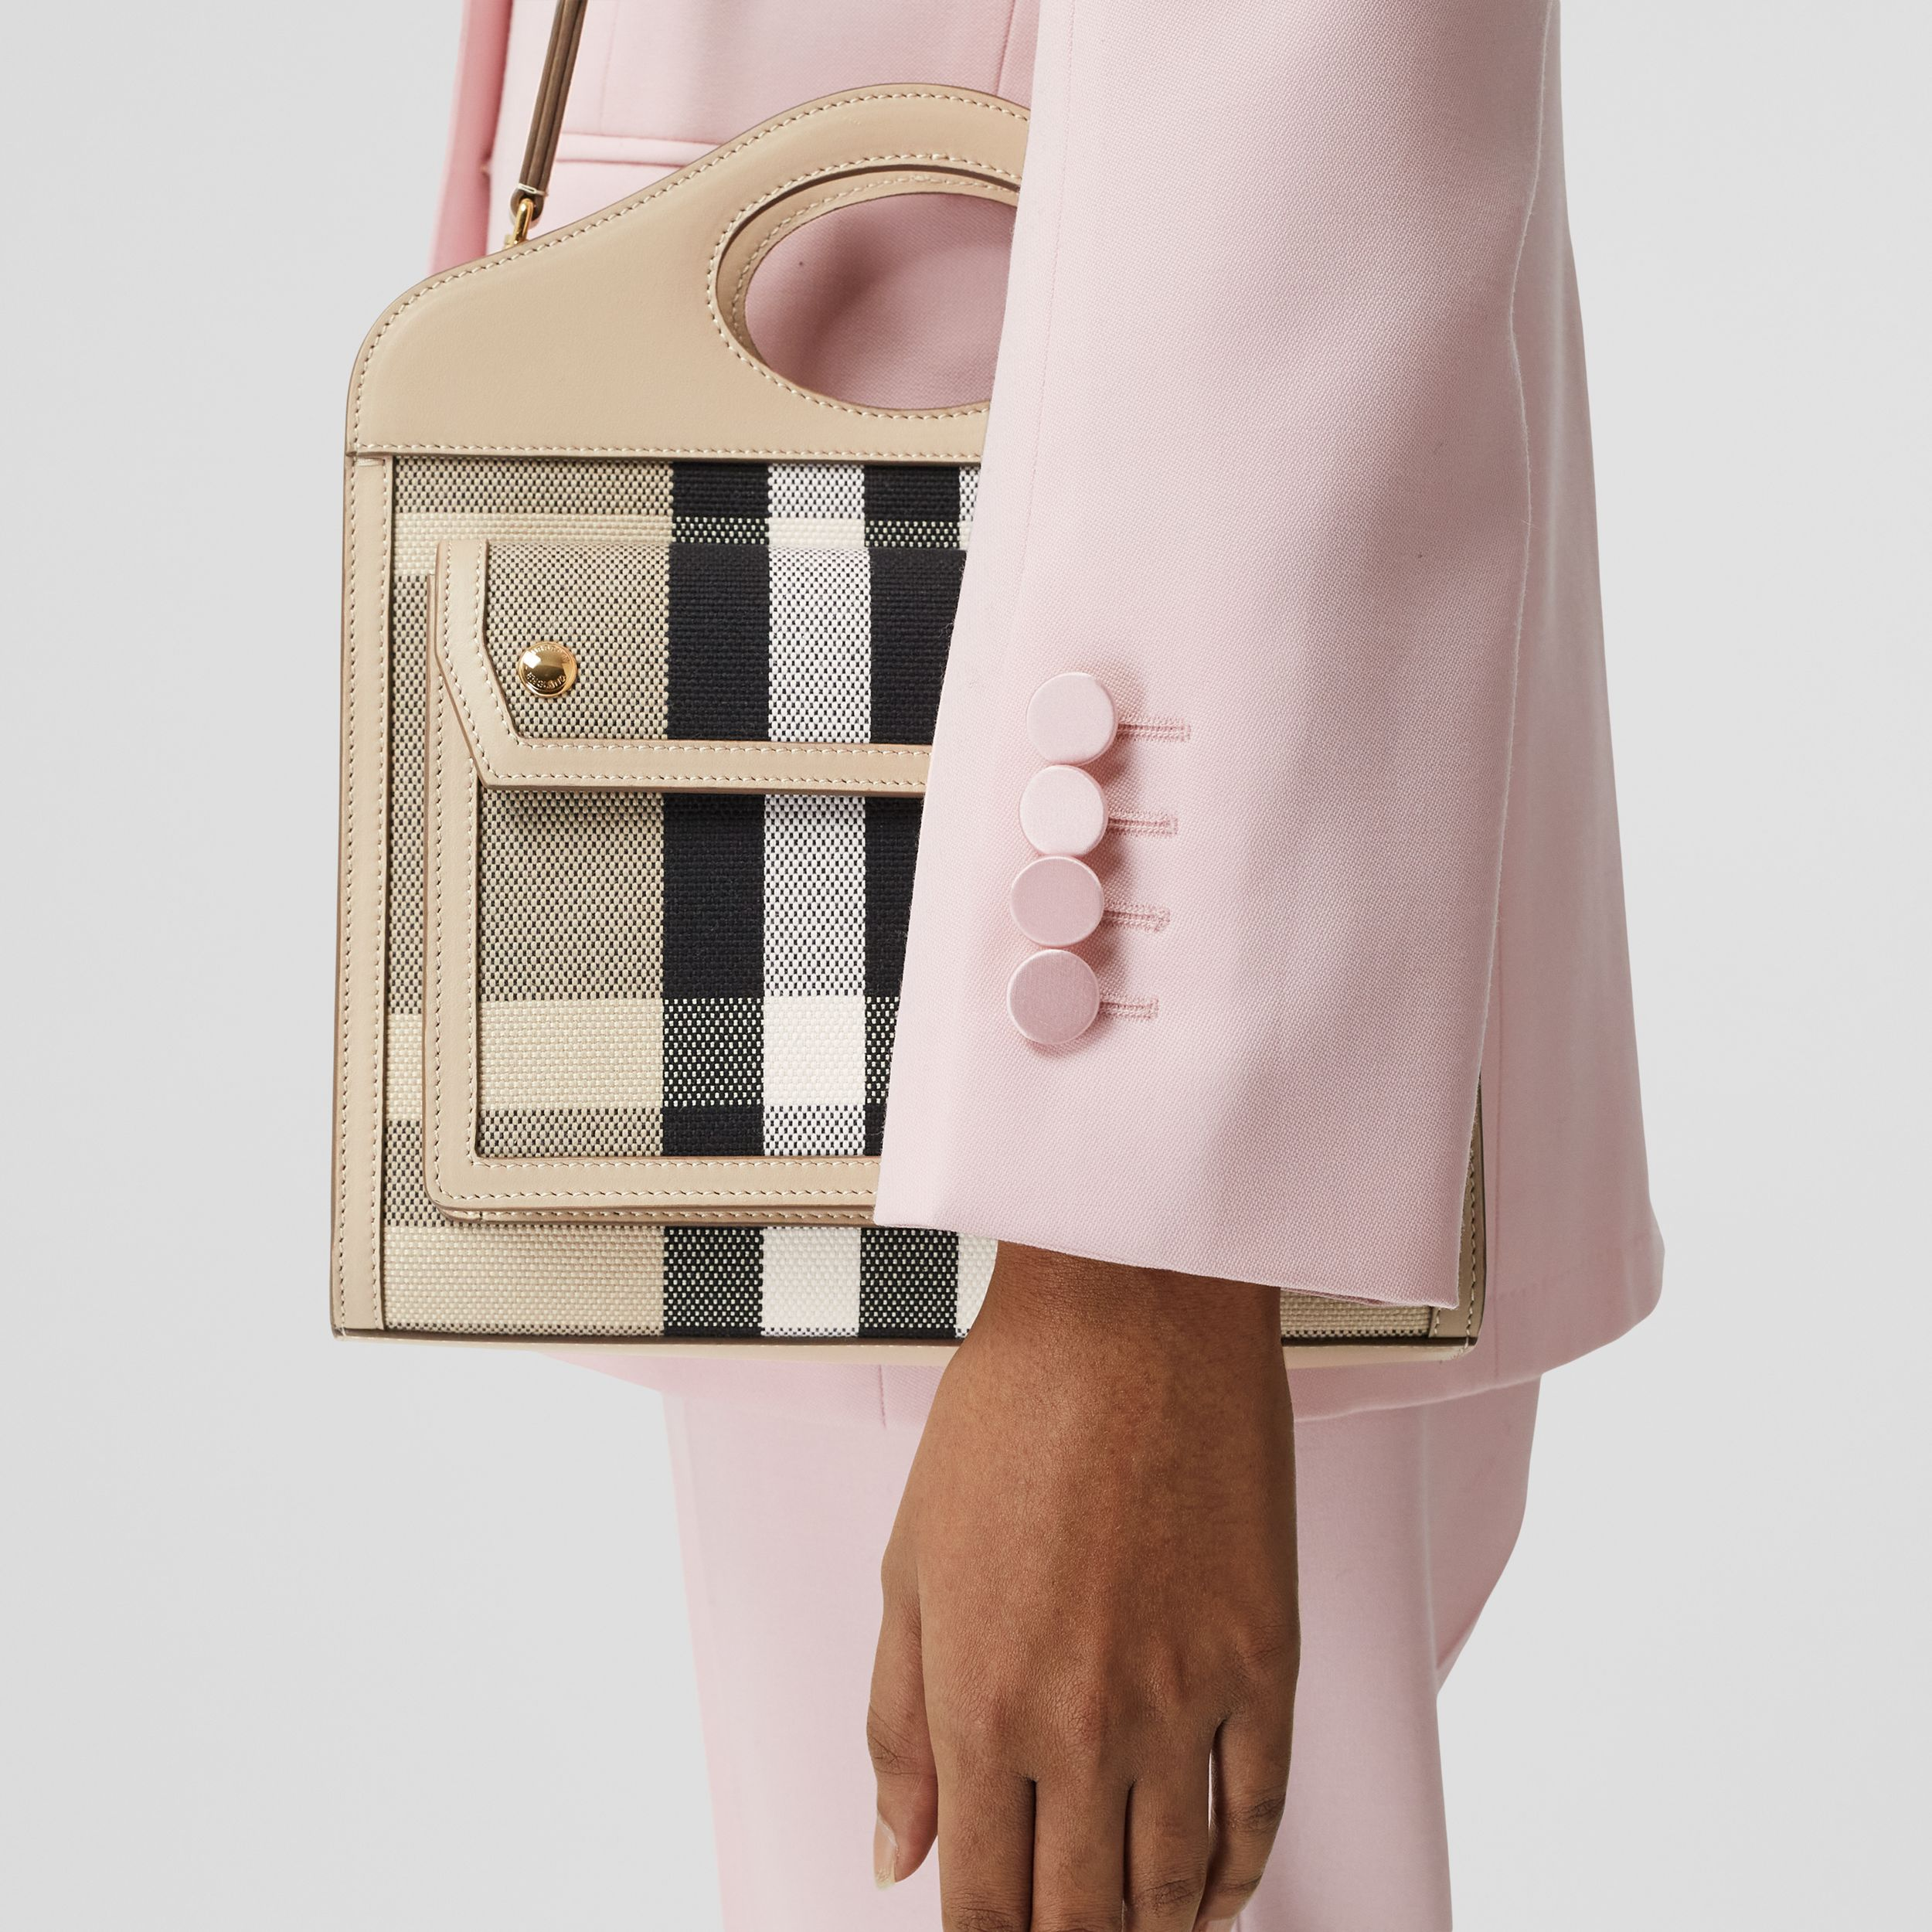 Mini Check Canvas and Leather Pocket Bag in Dusty Sand/soft Fawn - Women | Burberry Singapore - 3